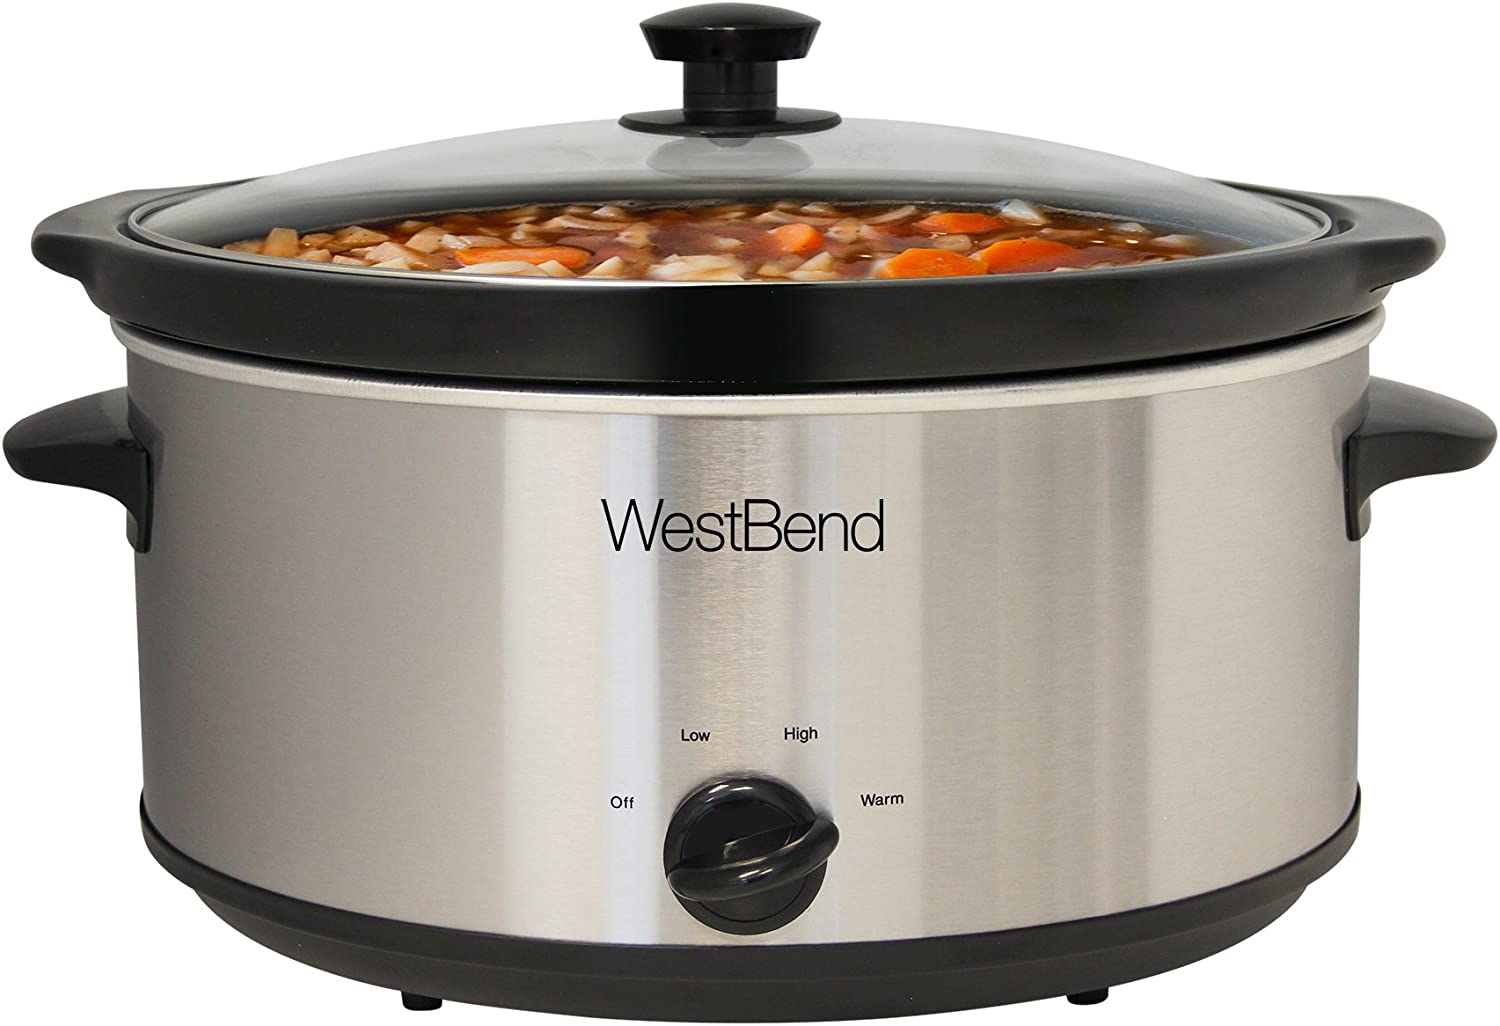 West Bend 87156 Oval Manual Slow Cooker with Ceramic Cooking Vessel and Glass Lid, 6-Quart, One Size Fits All All, Stainless Steel